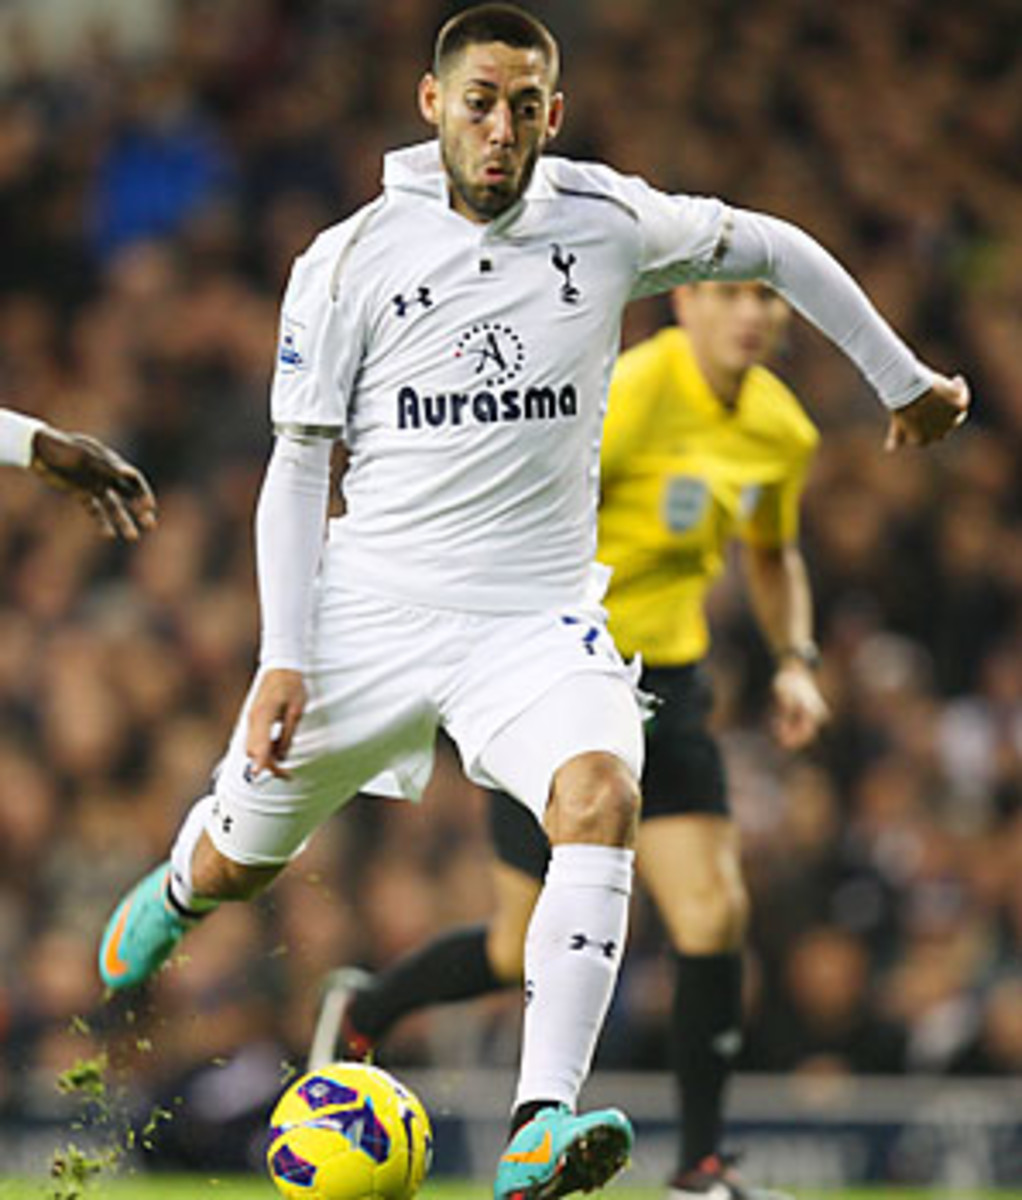 clint-dempsey-story-icon.jpg